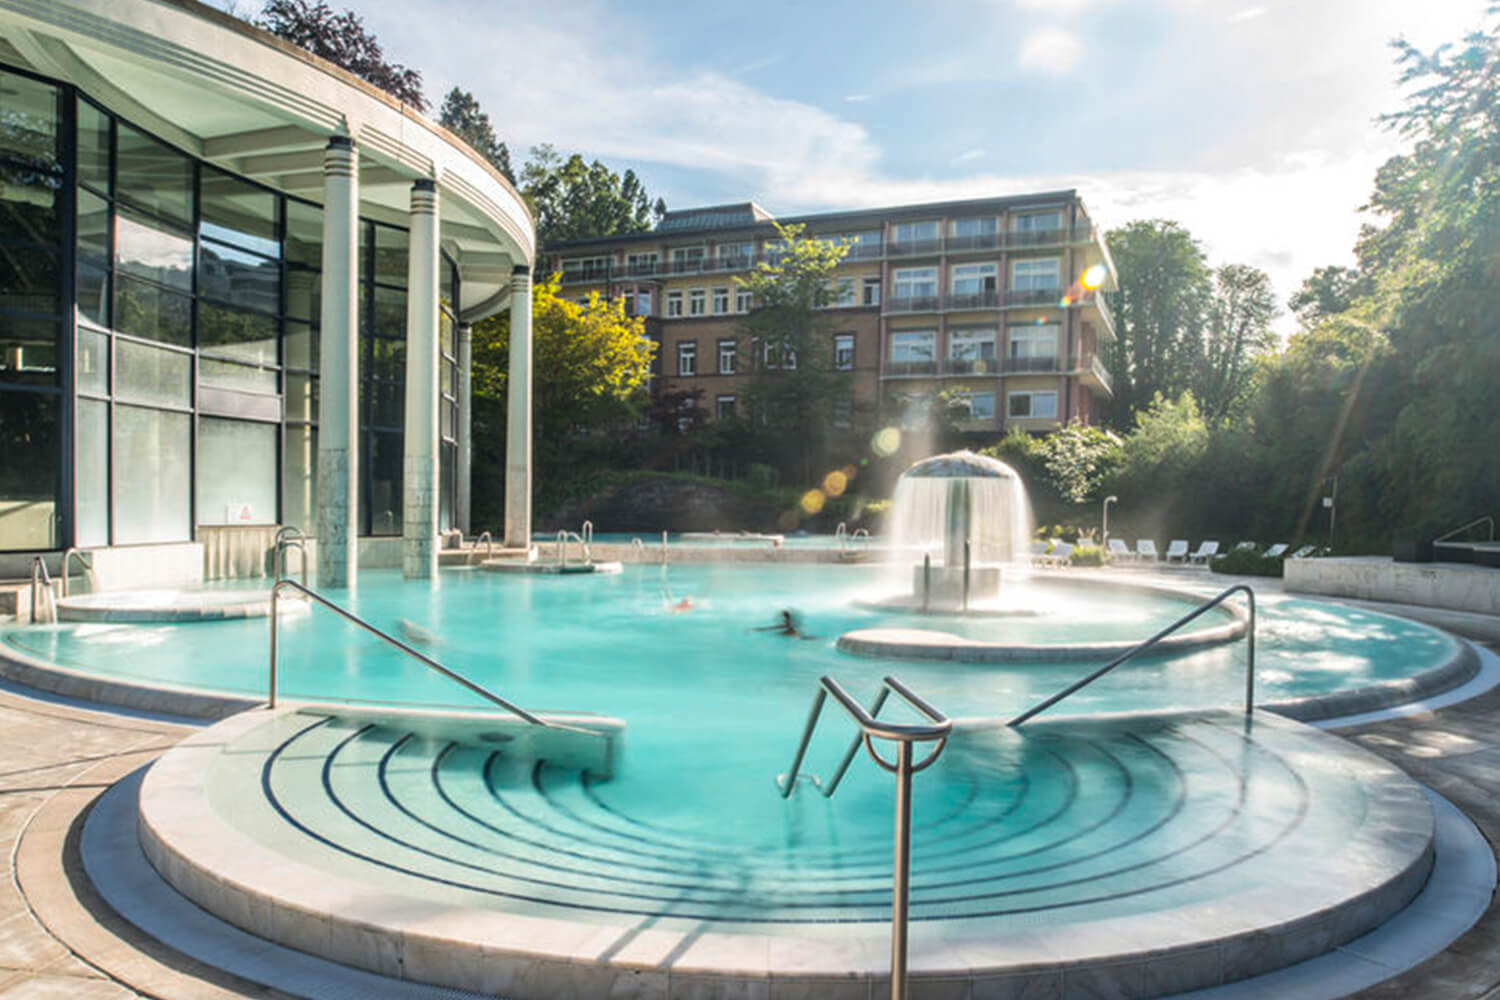 Roomers Baden-Baden Caracalla Therme